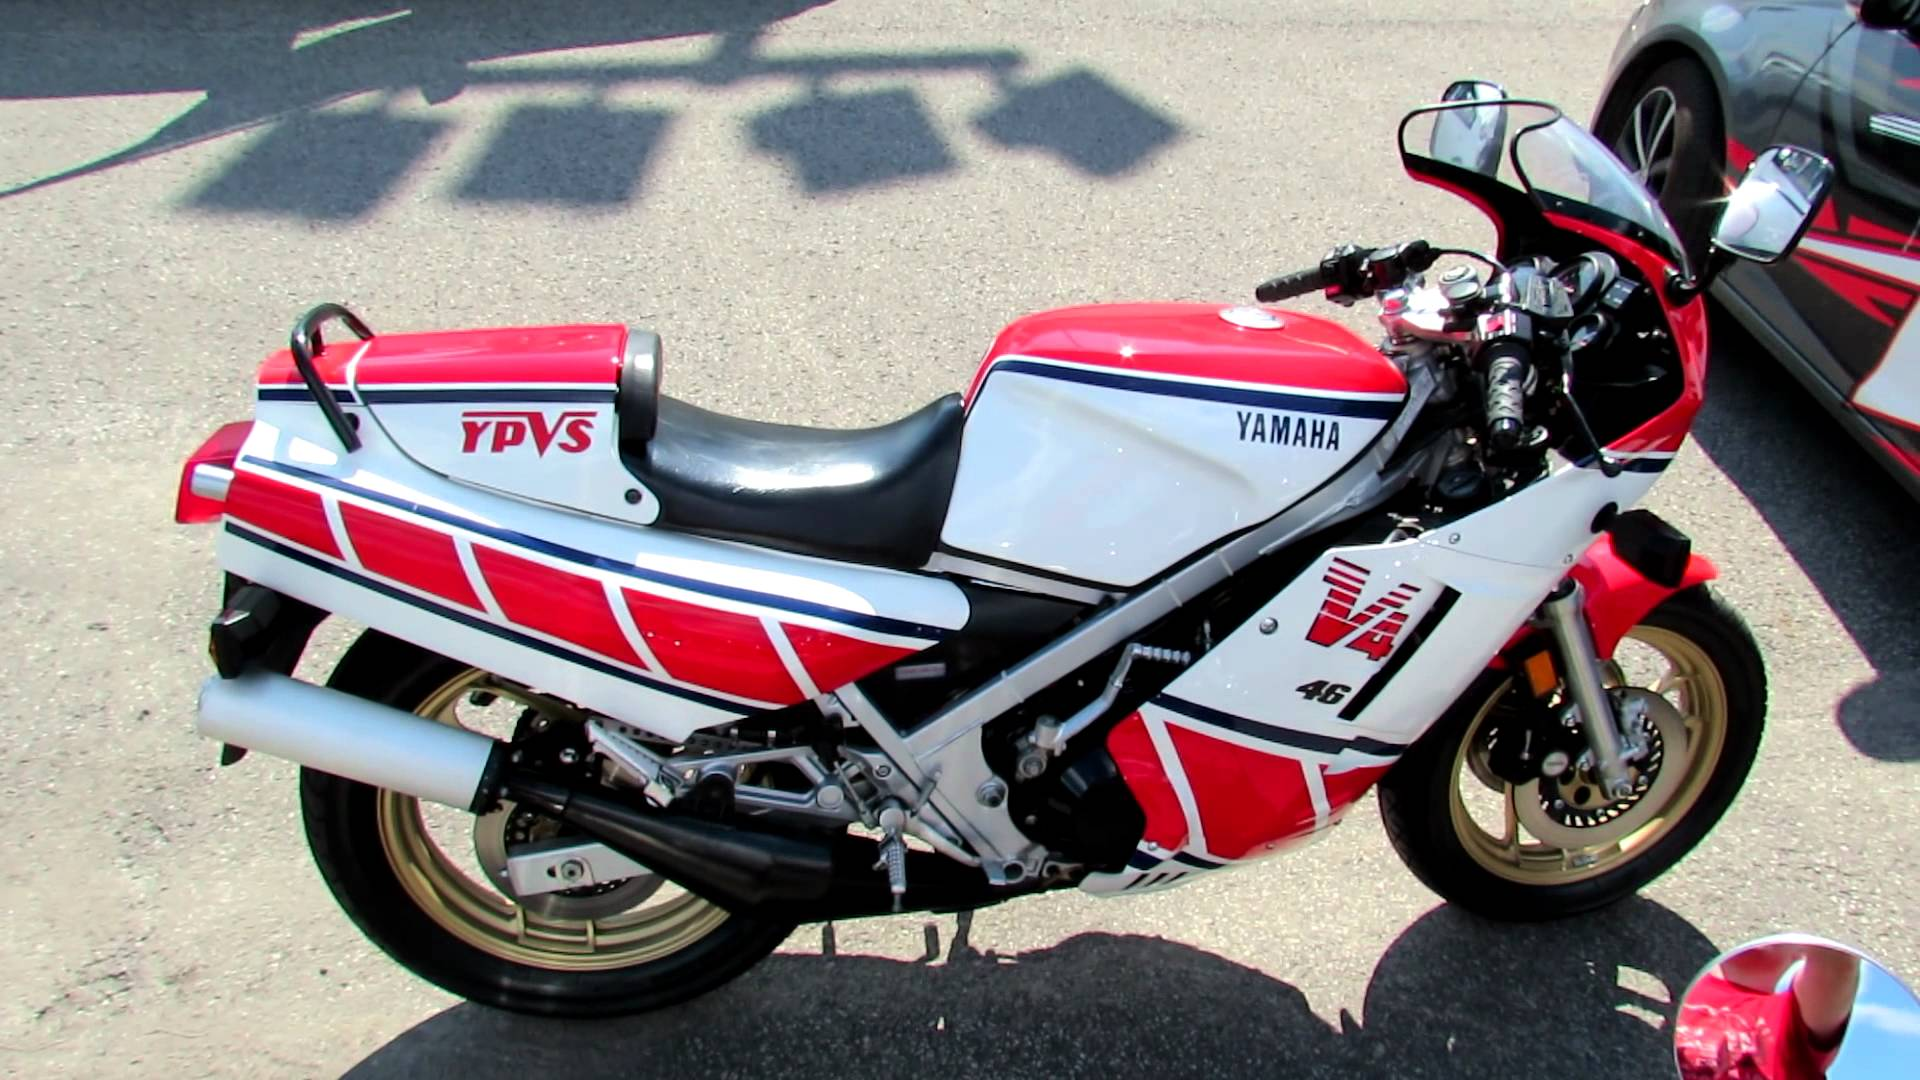 Yamaha RD 500 LC 1985 images #90038